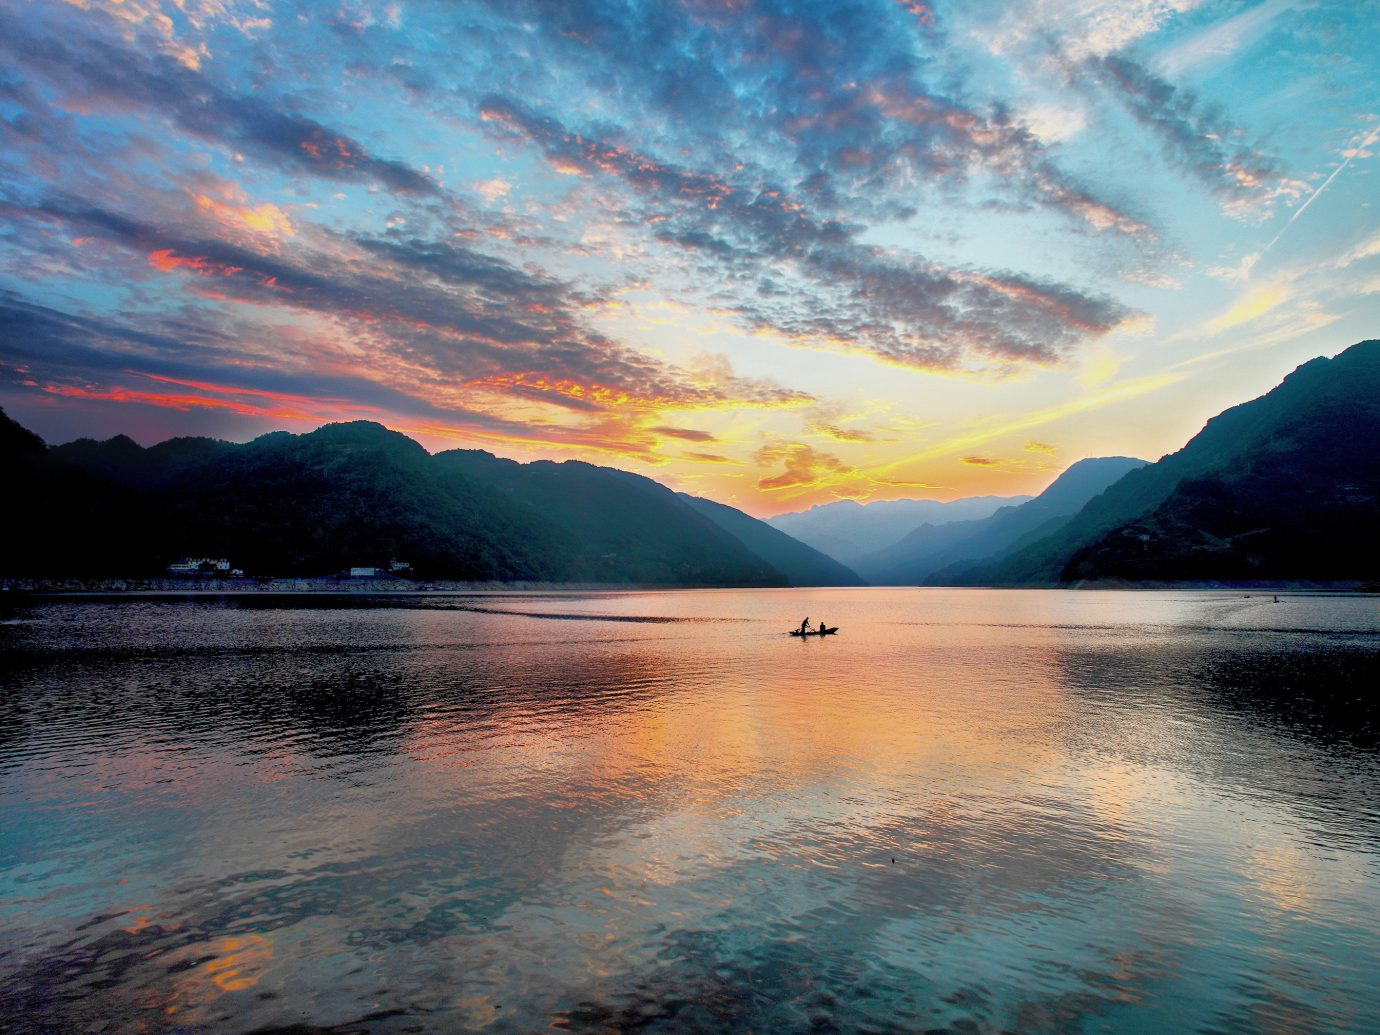 Lakes + Rivers Landmarks water mountain outdoor sky Nature Sea cloud reflection horizon Lake shore sunrise Ocean dawn Sunset Coast loch morning dusk evening afterglow bay canyon computer wallpaper clouds surrounded